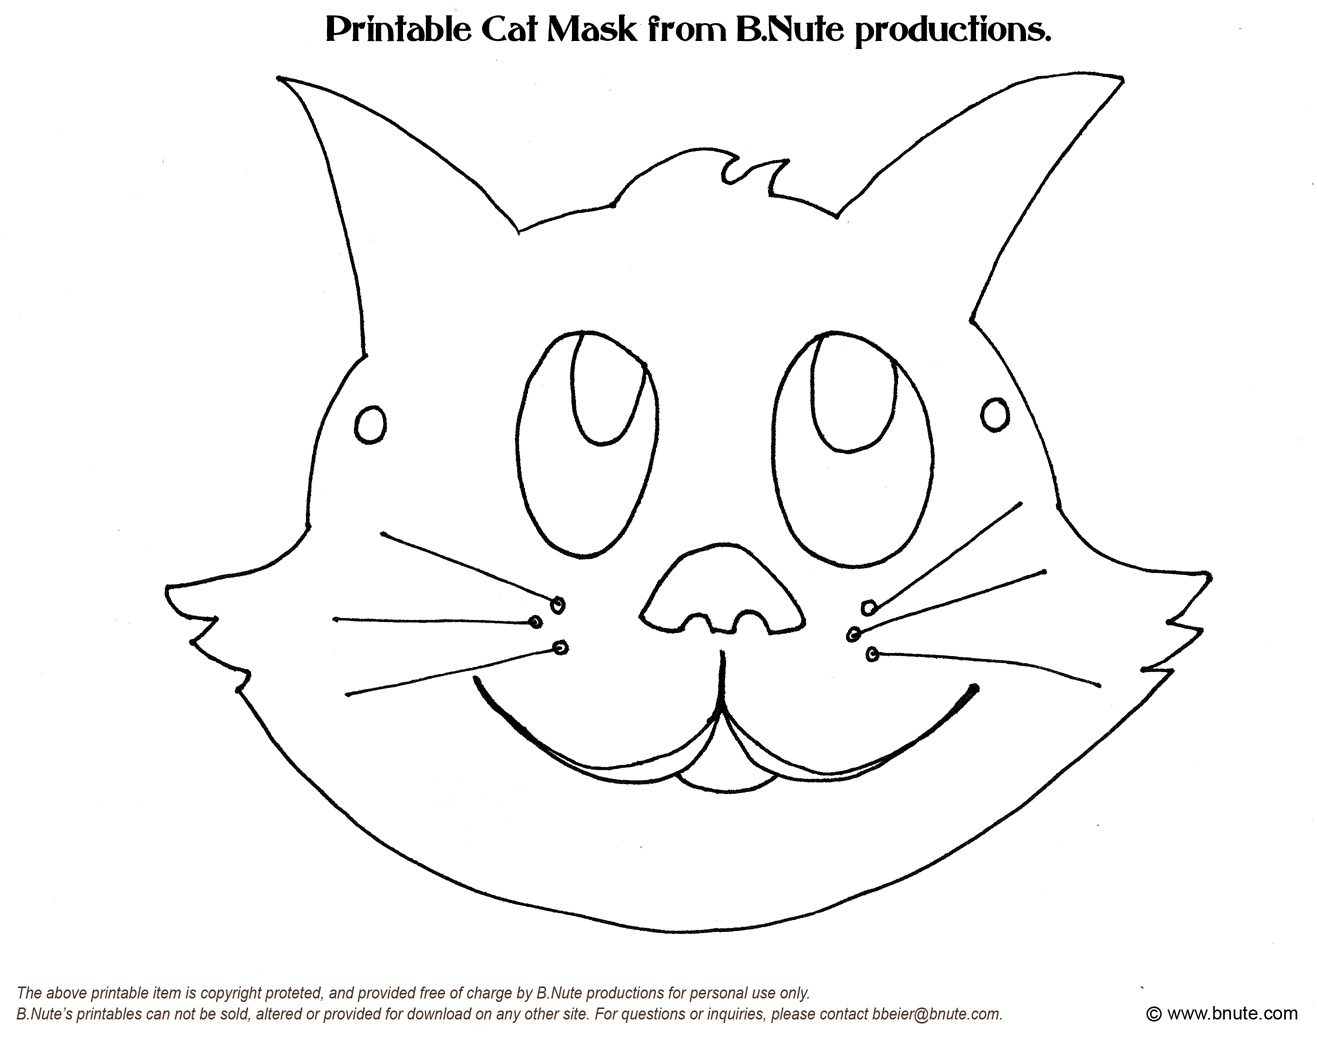 Massif image with printable cat mask